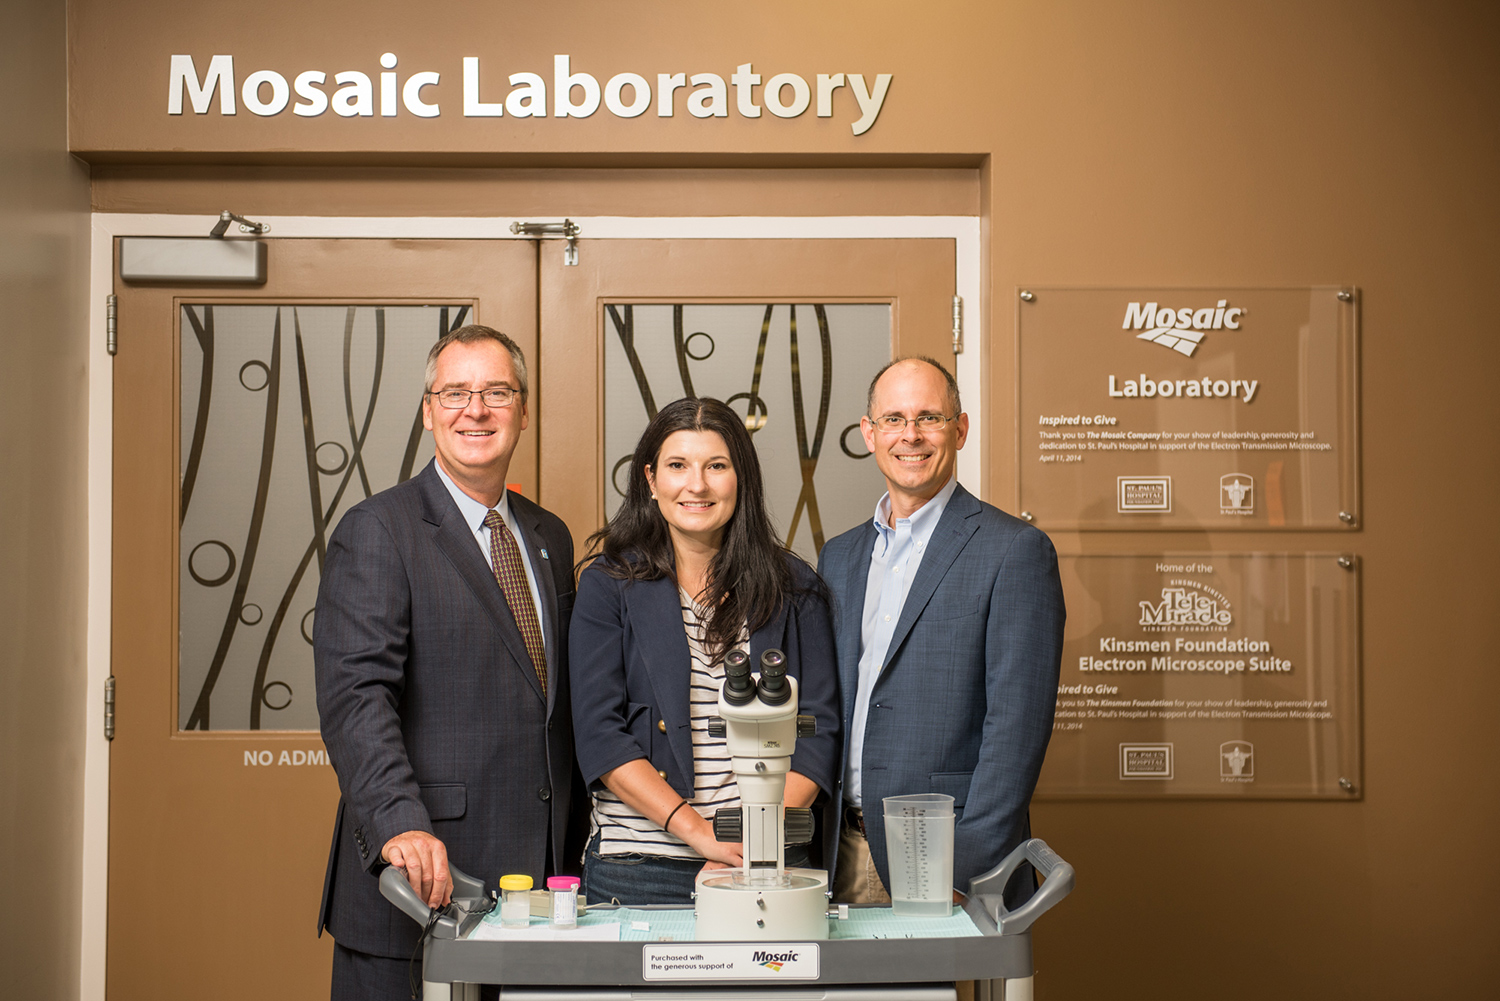 SPH Foundation CEO Bruce Acton with Mosaic Senior Director of Public Affairs Sarah Fedorchuk and Mosaic Senior Vice President Bruce Bodine at the entrance to the Mosaic Laboratory at St. Paul's Hospital (Saskatoon, Saskatchewan), which was funded by the company's philanthropy.